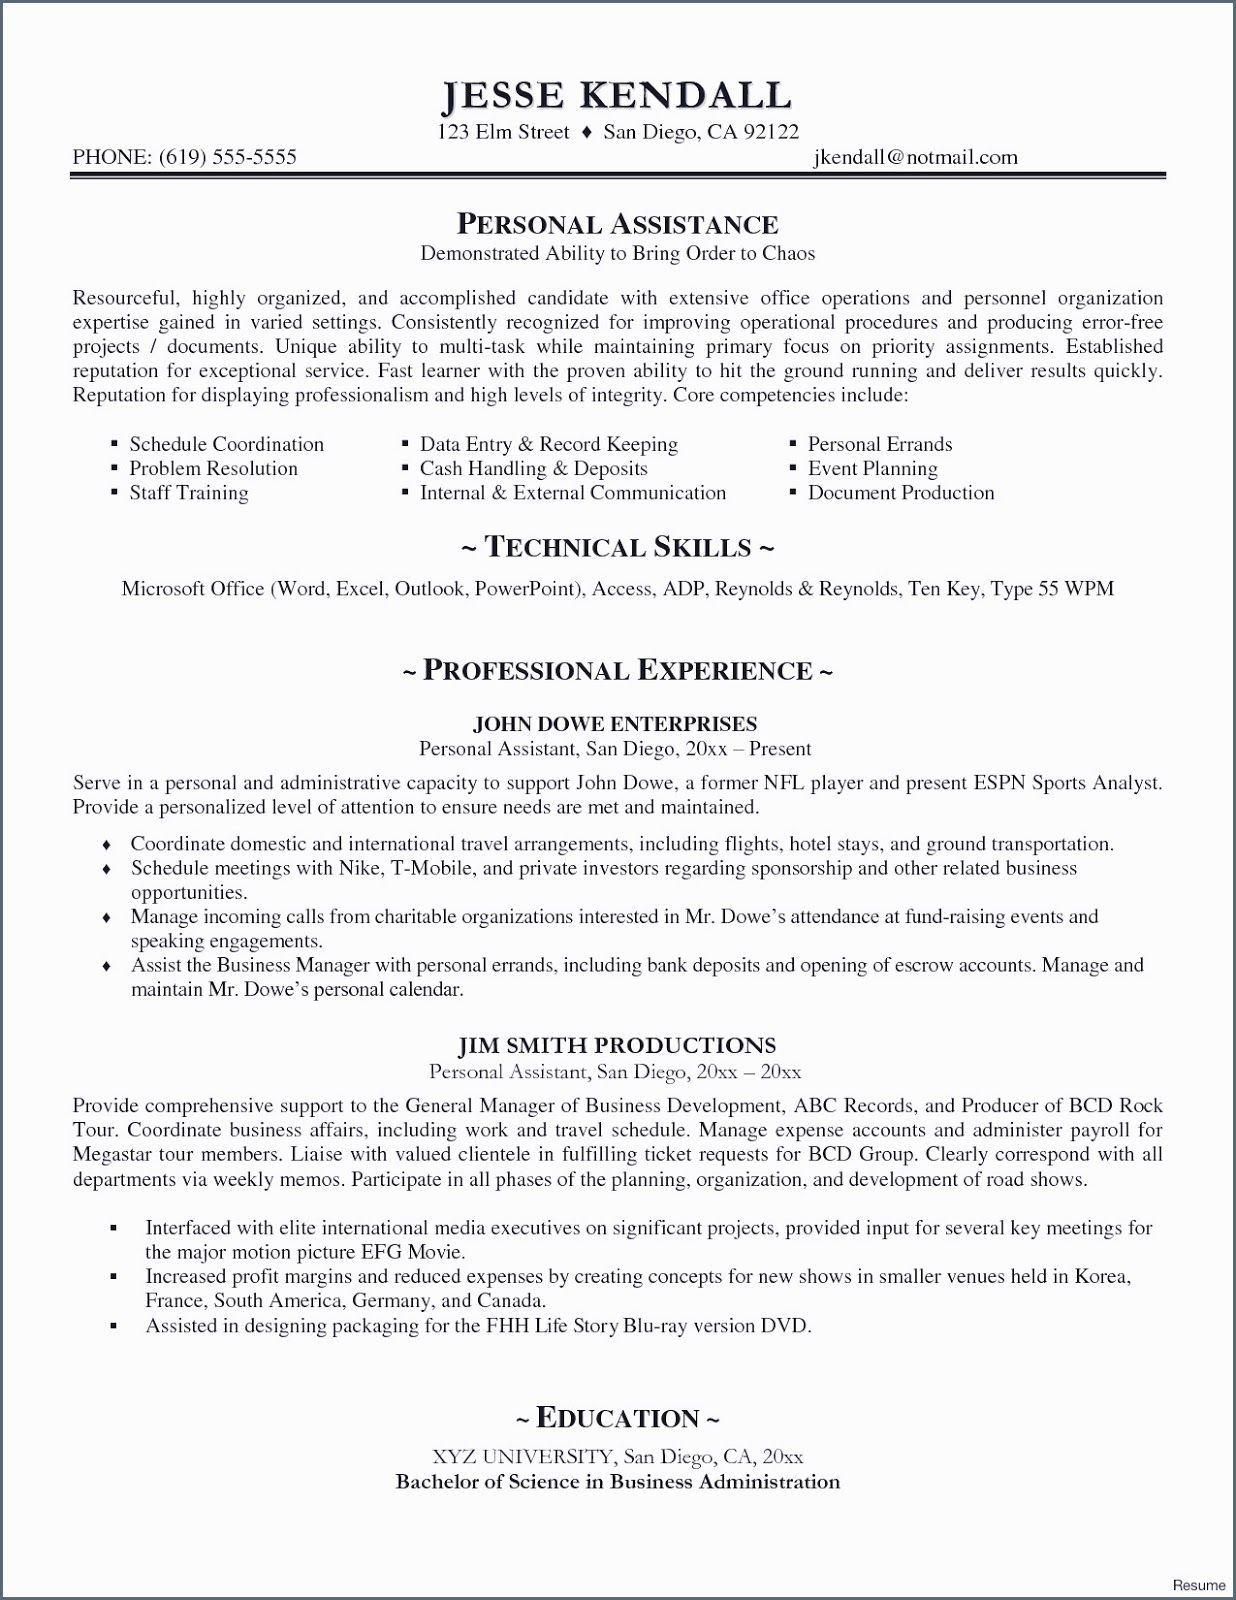 Personal Assistant Resume Samples Personal Assistant Resume Samples Personal Assistant Re Event Planning Quotes Business Resume Template Resume Template Free